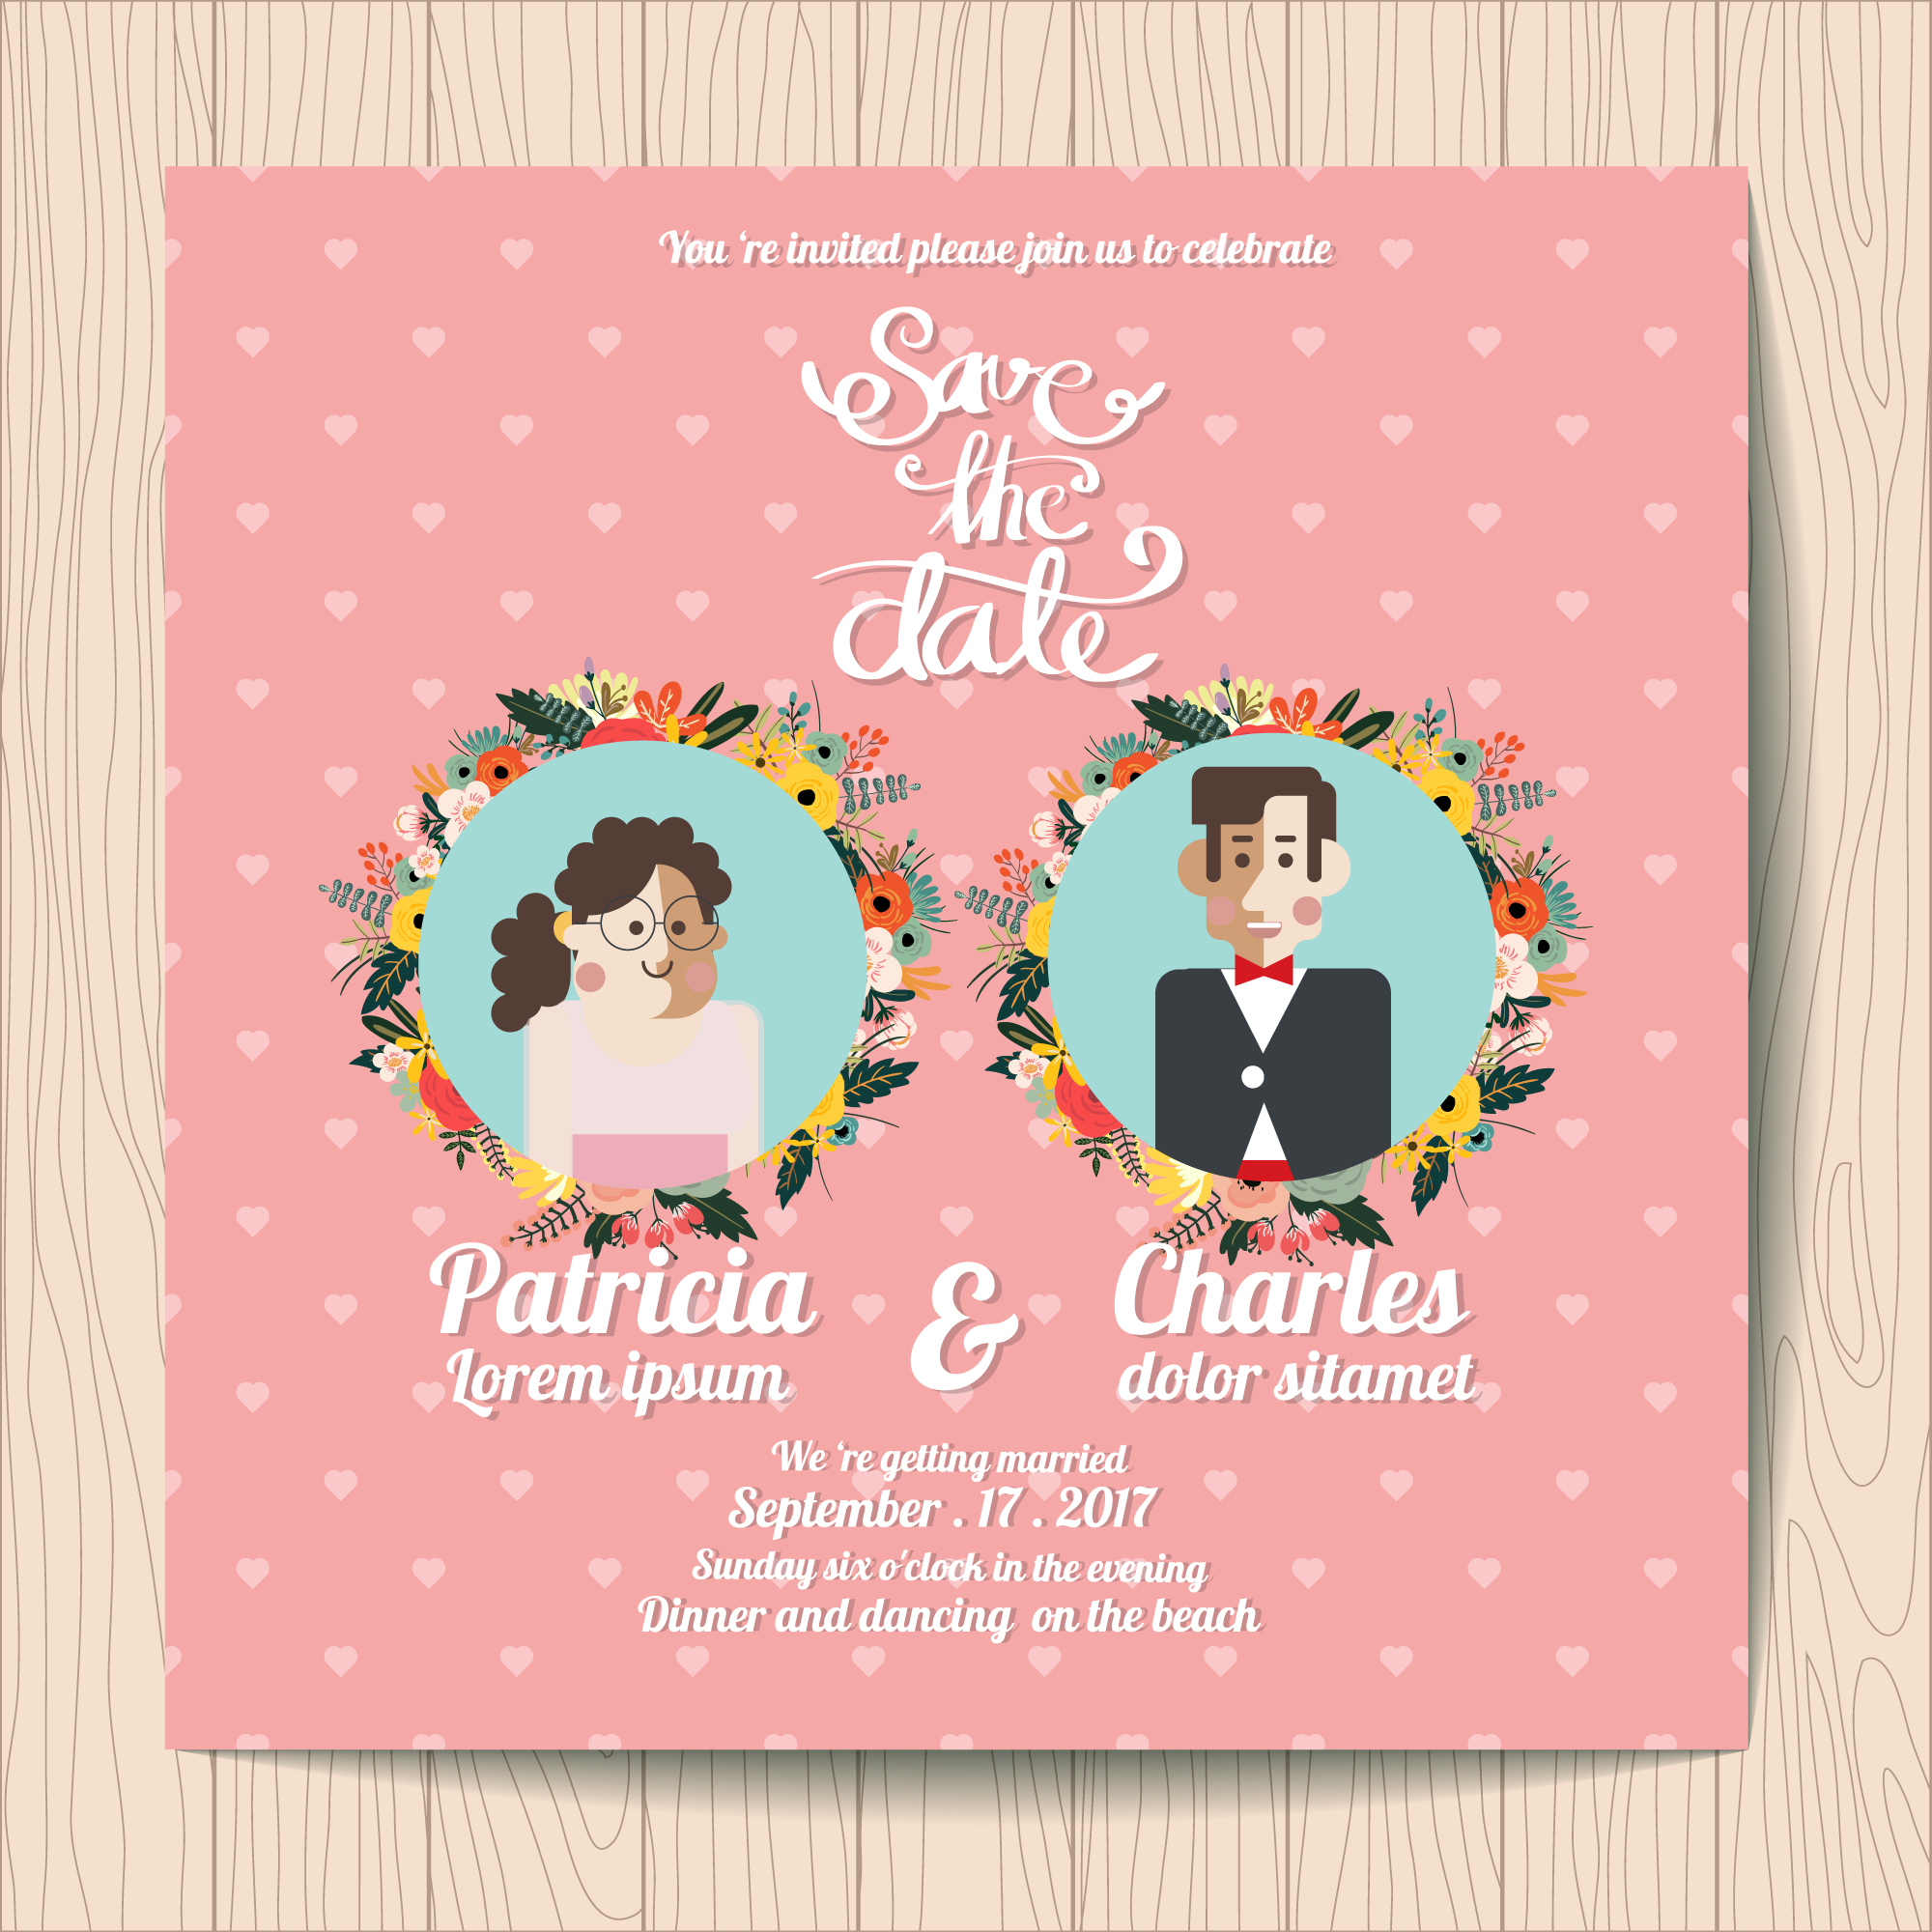 Wedding invitation with character inside floral wreaths